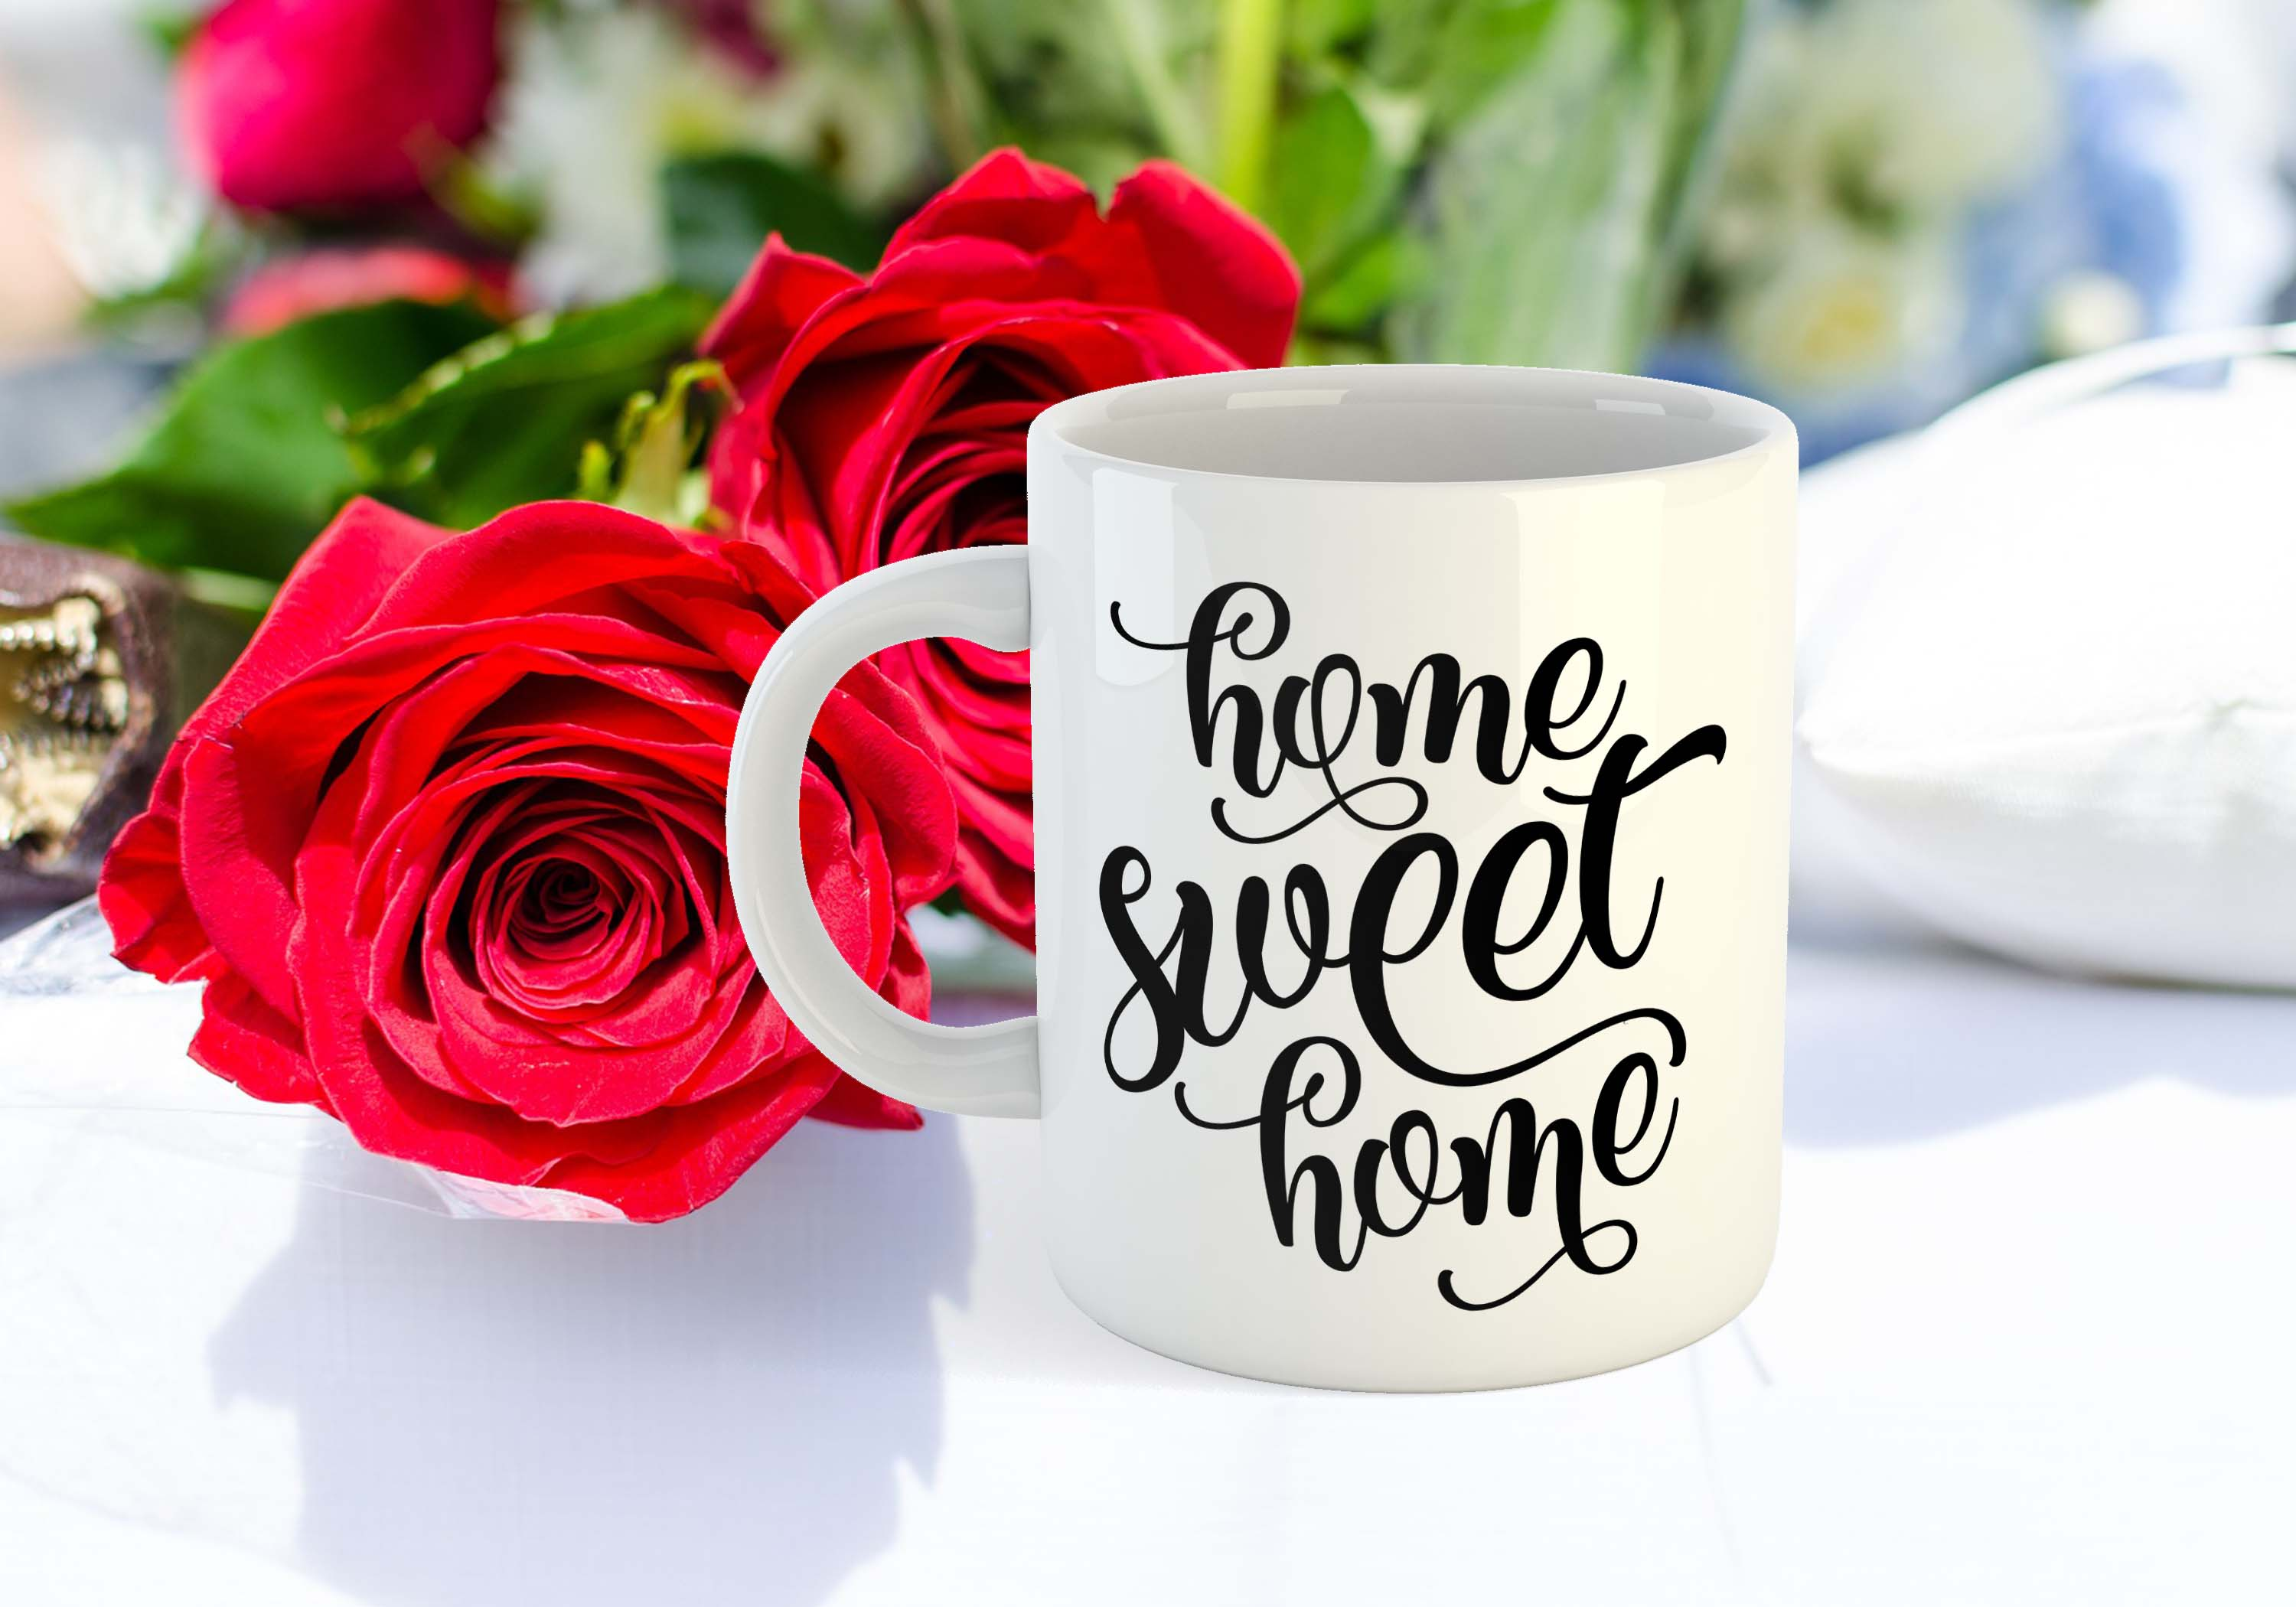 Home sweet home SVG PNG EPS DXF, Home SVG example image 2